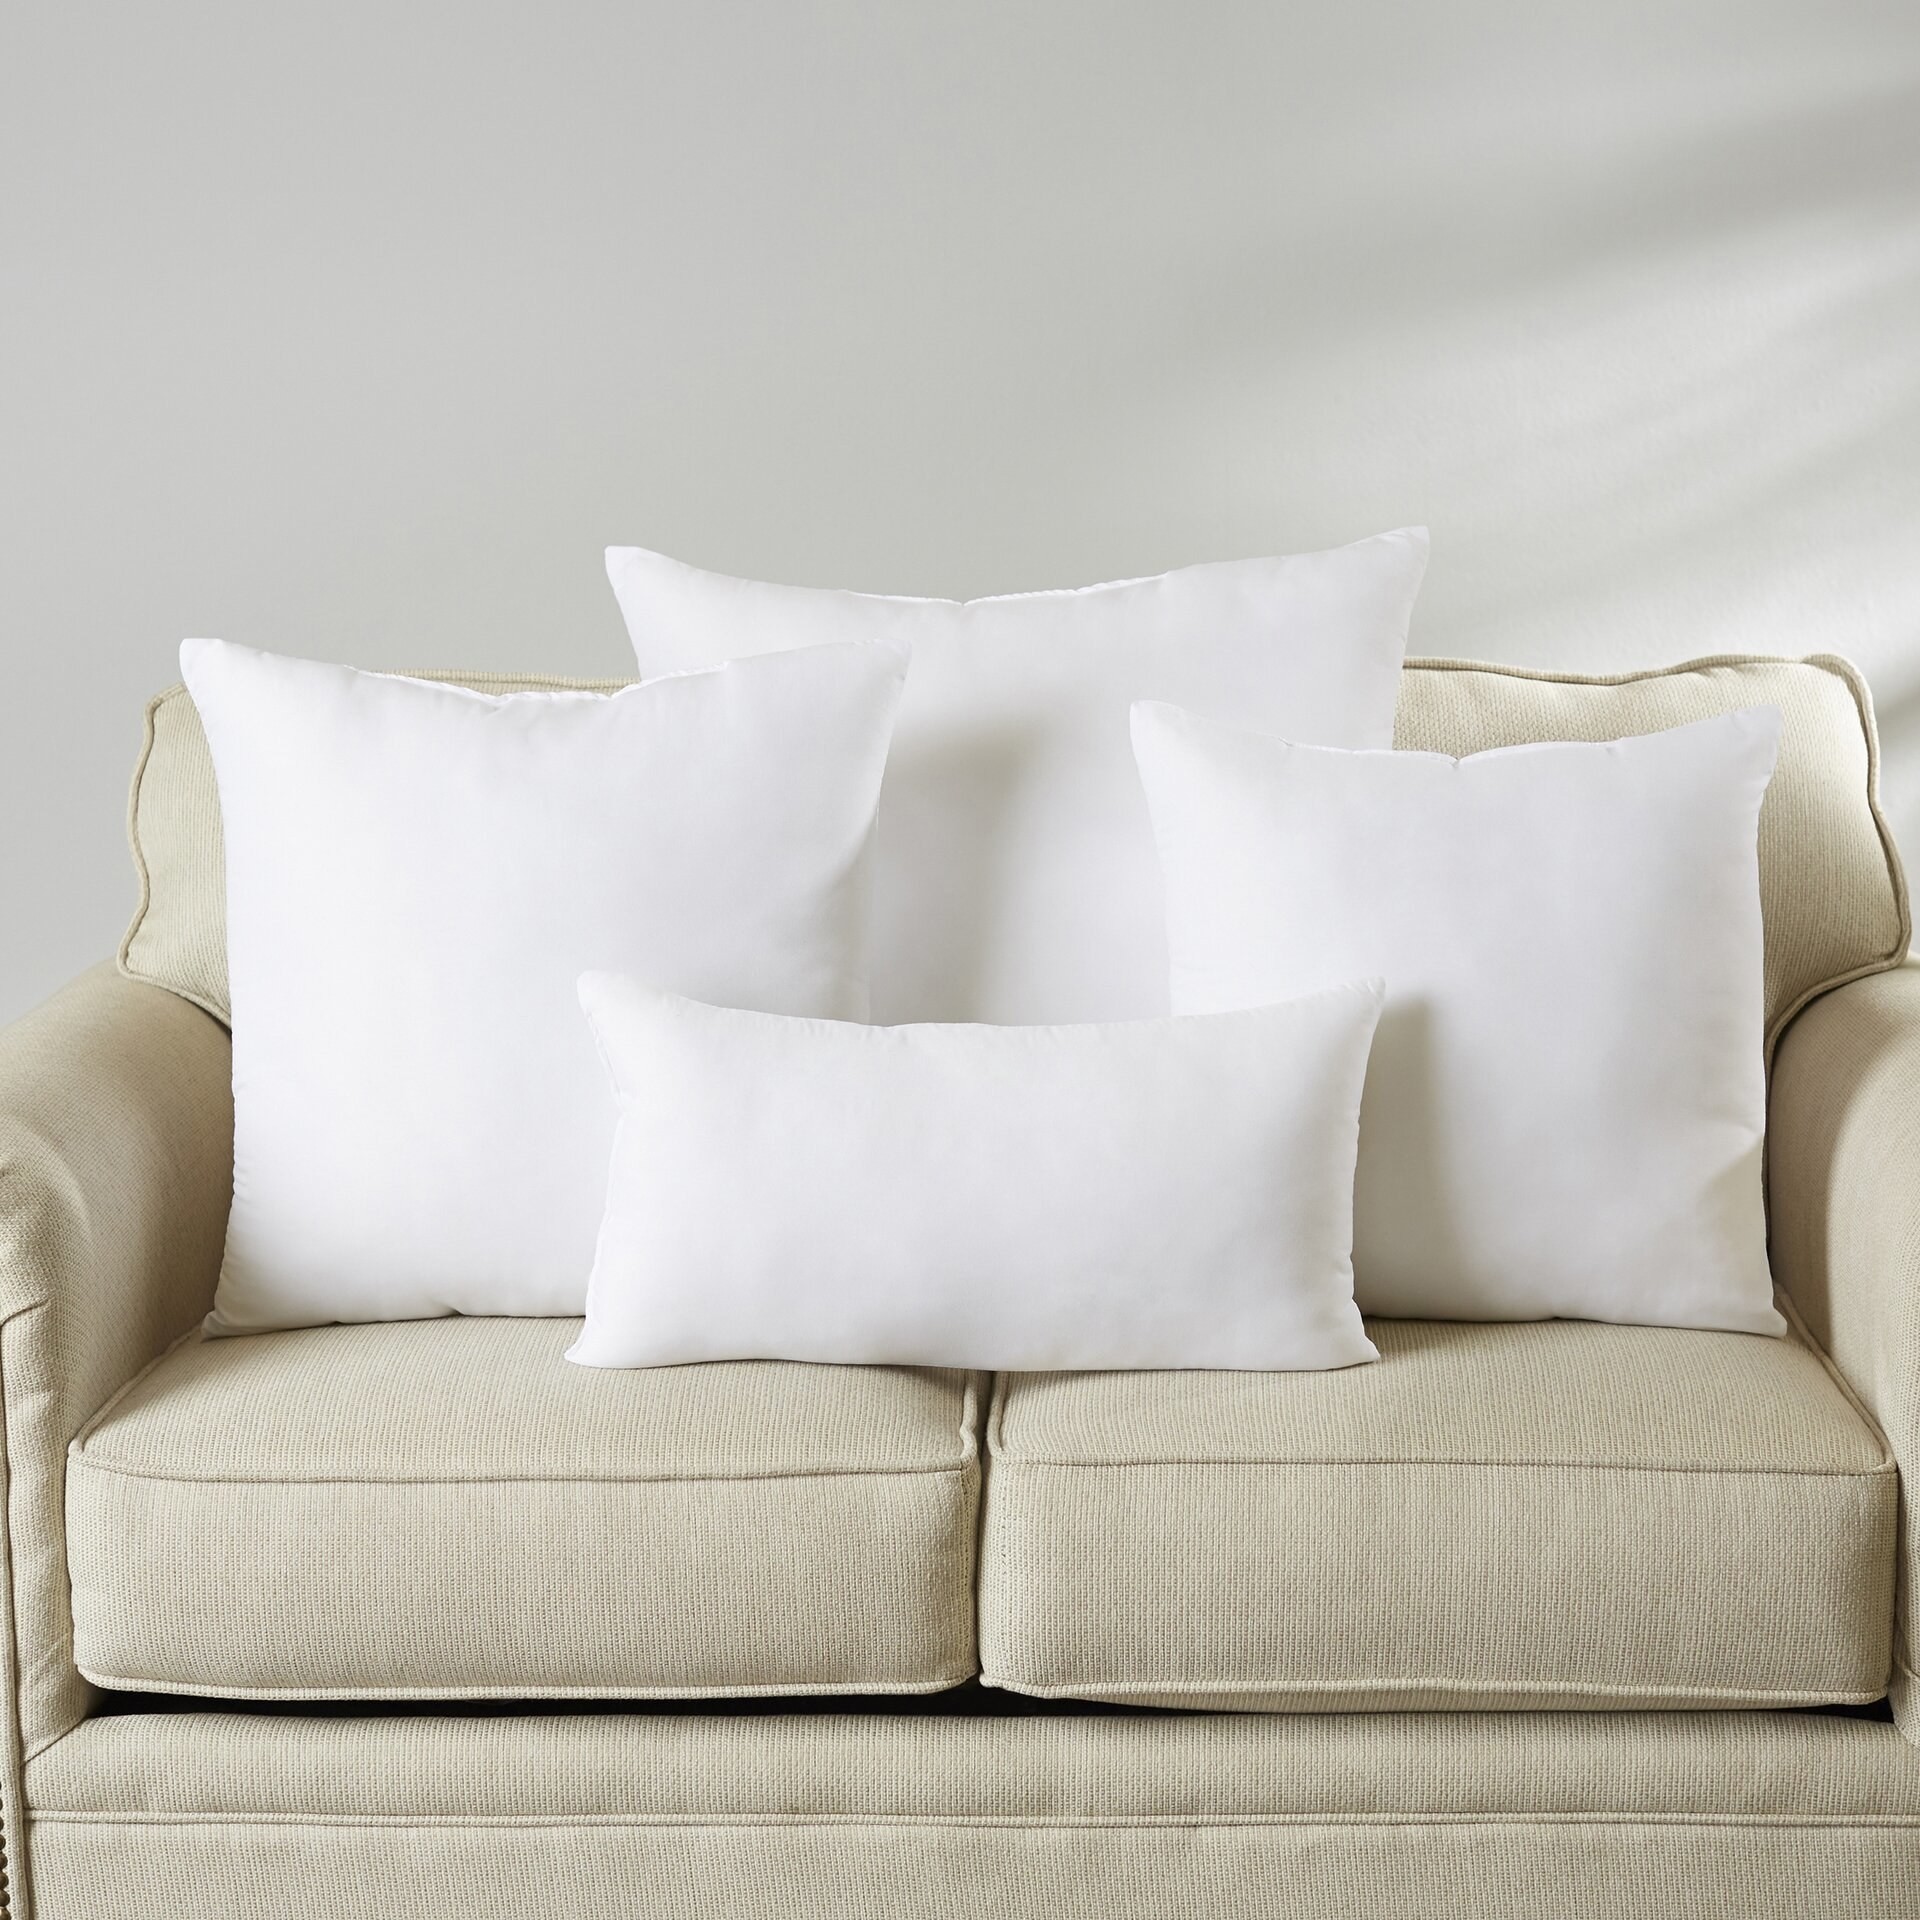 White pillow inserts in square and rectangular shapes